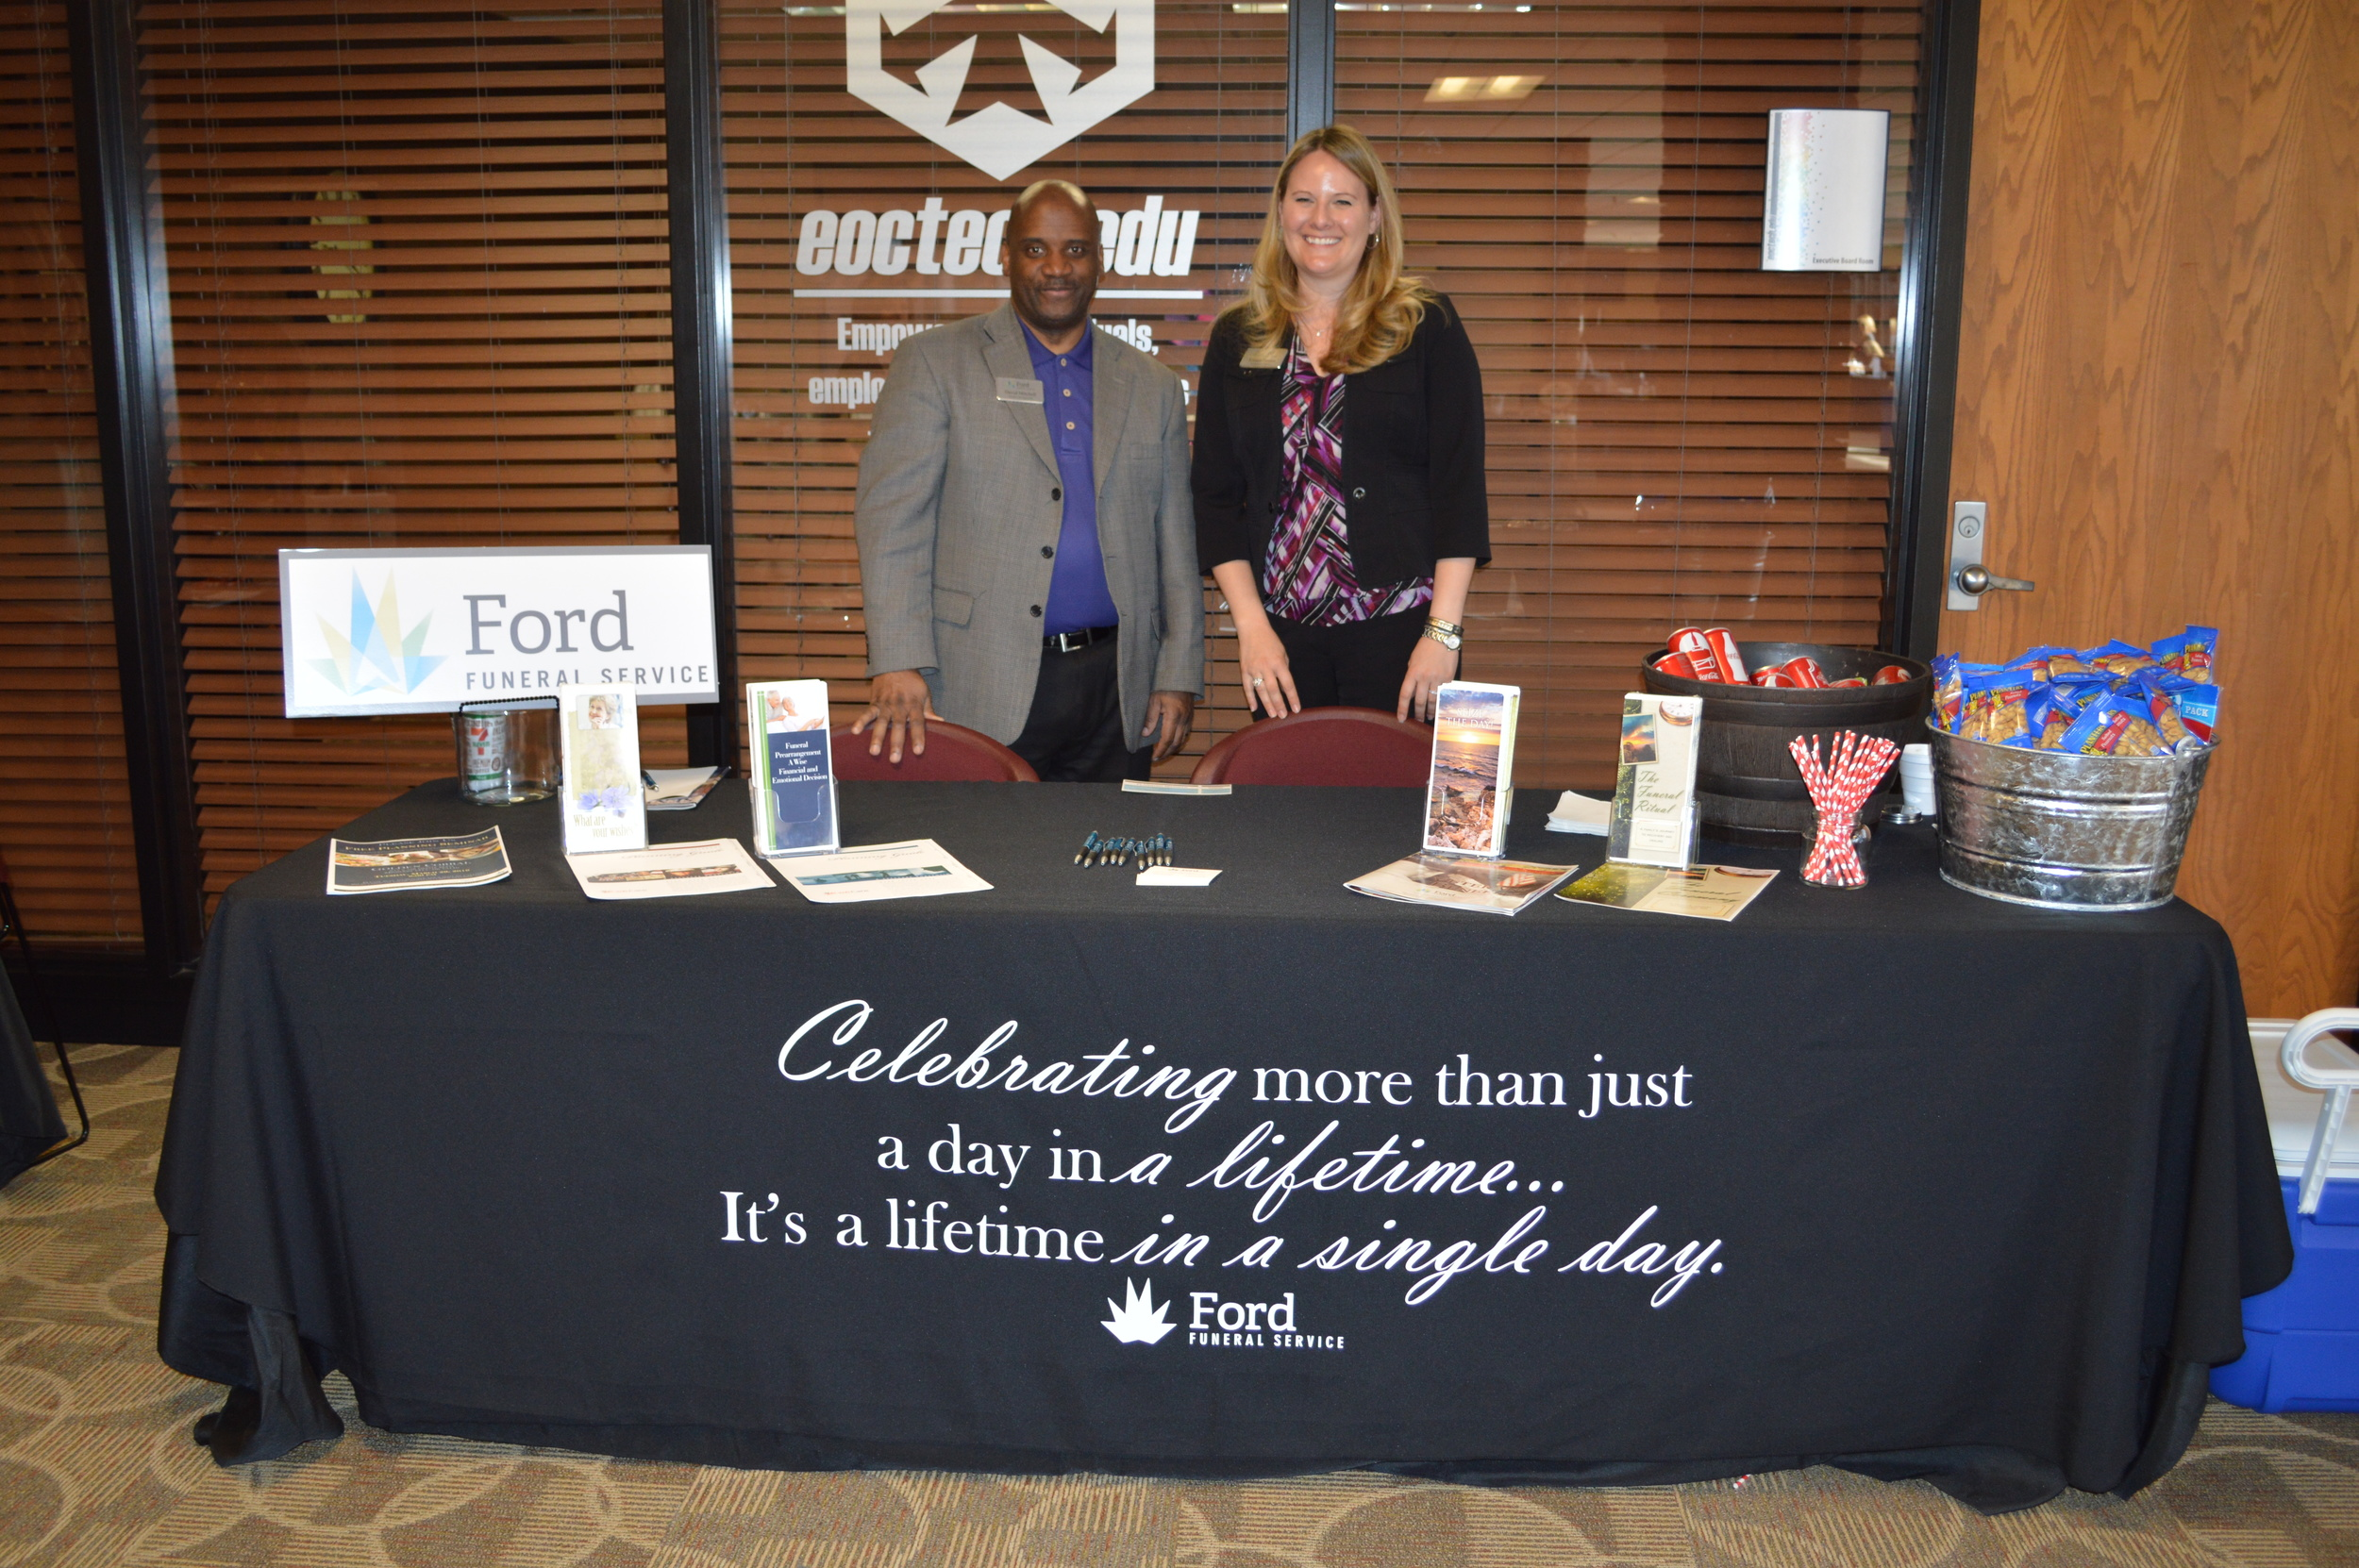 David Mitchell and Kristen Beulen with Ford Funeral Service located in Midwest City provide information to seniors and baby boomers about pre-planning services during the Prime of Your Life Expo.